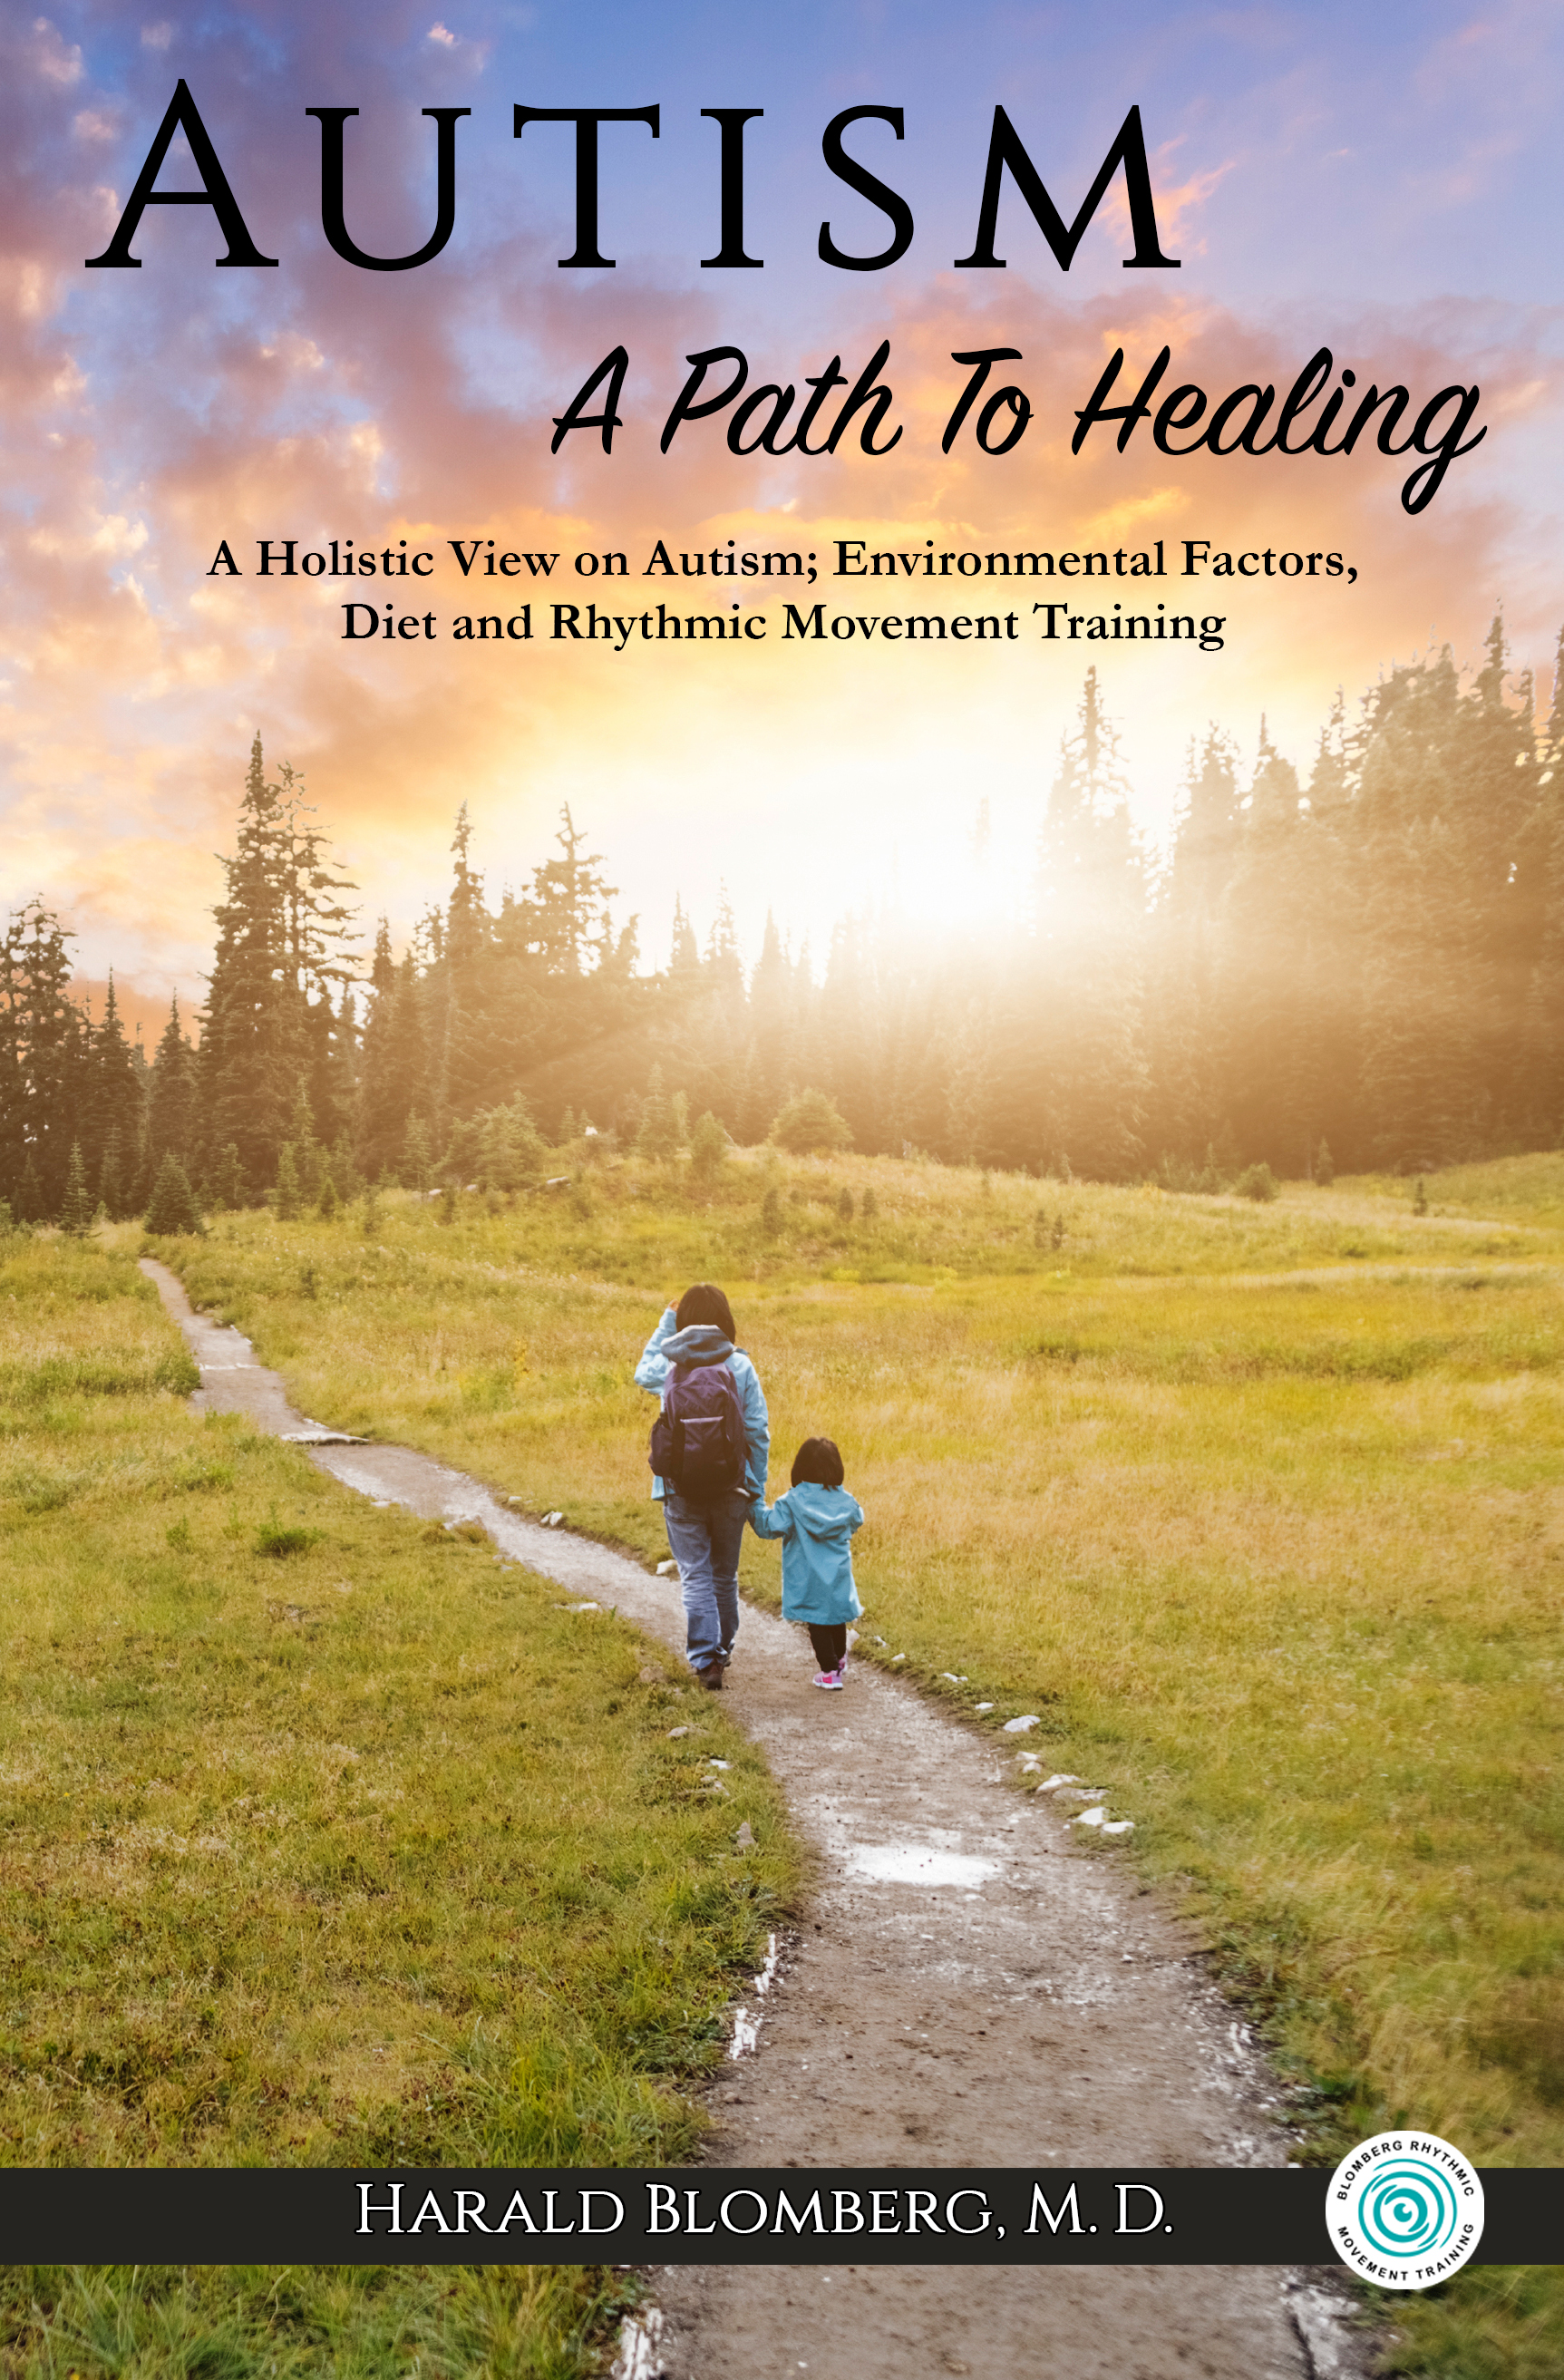 Autism, A Path to Healing. -